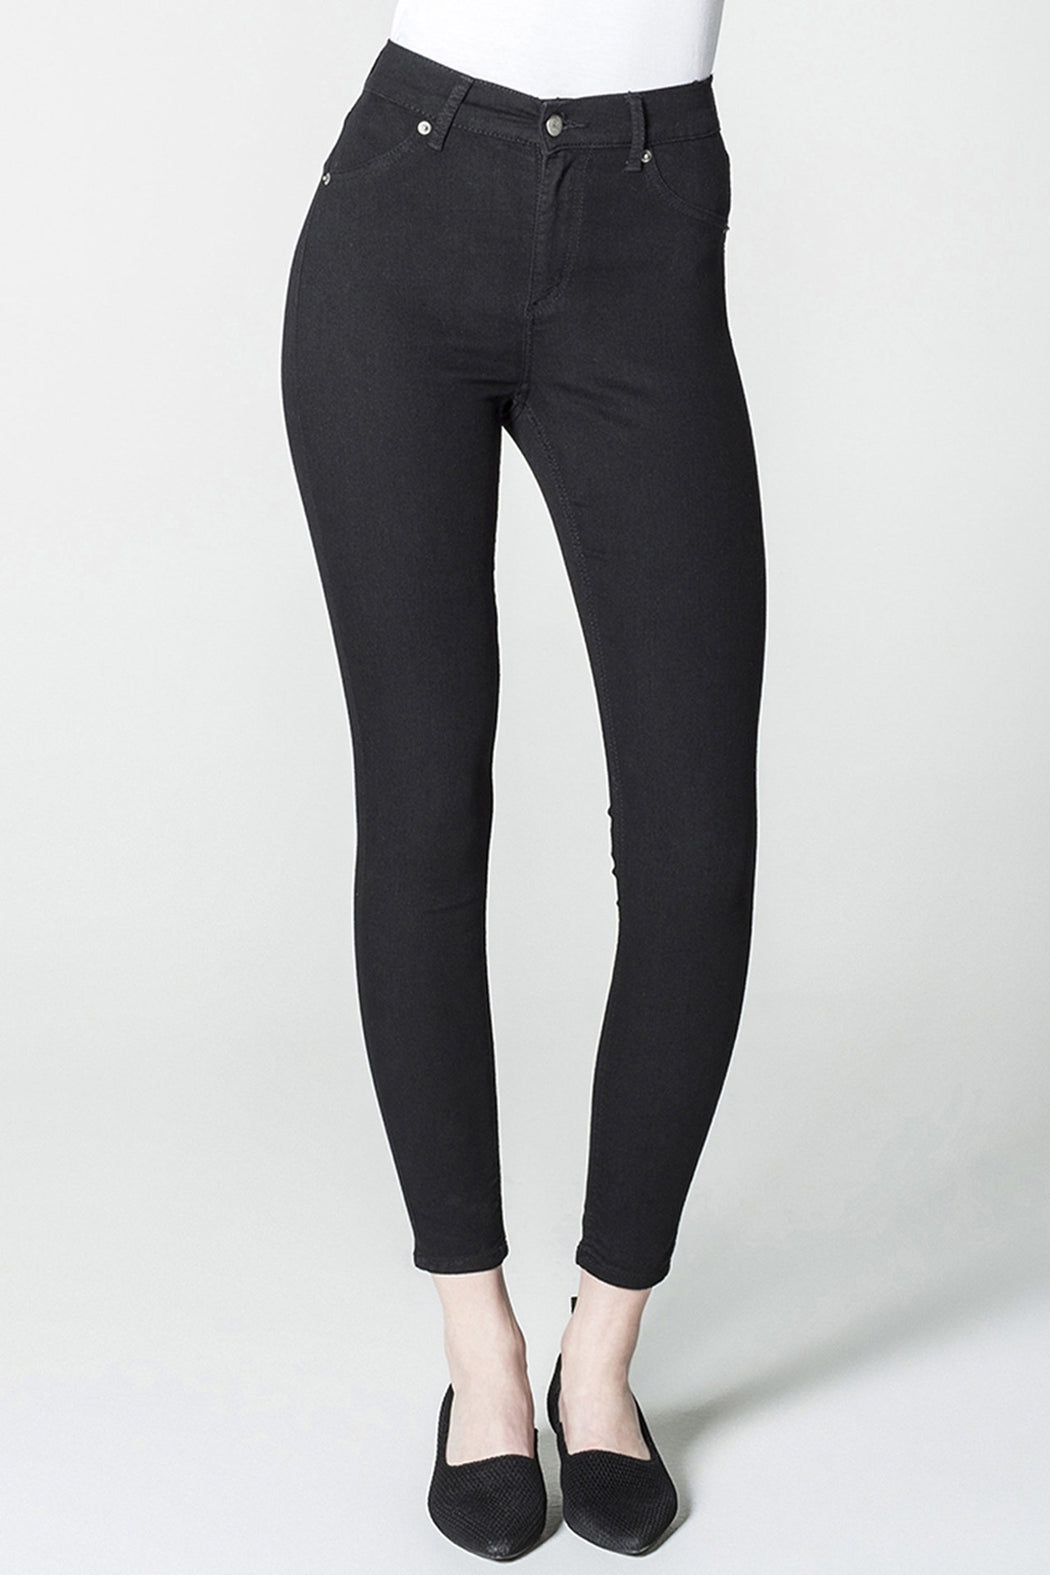 Organic Cotton Black High Spray Skinny Jeans